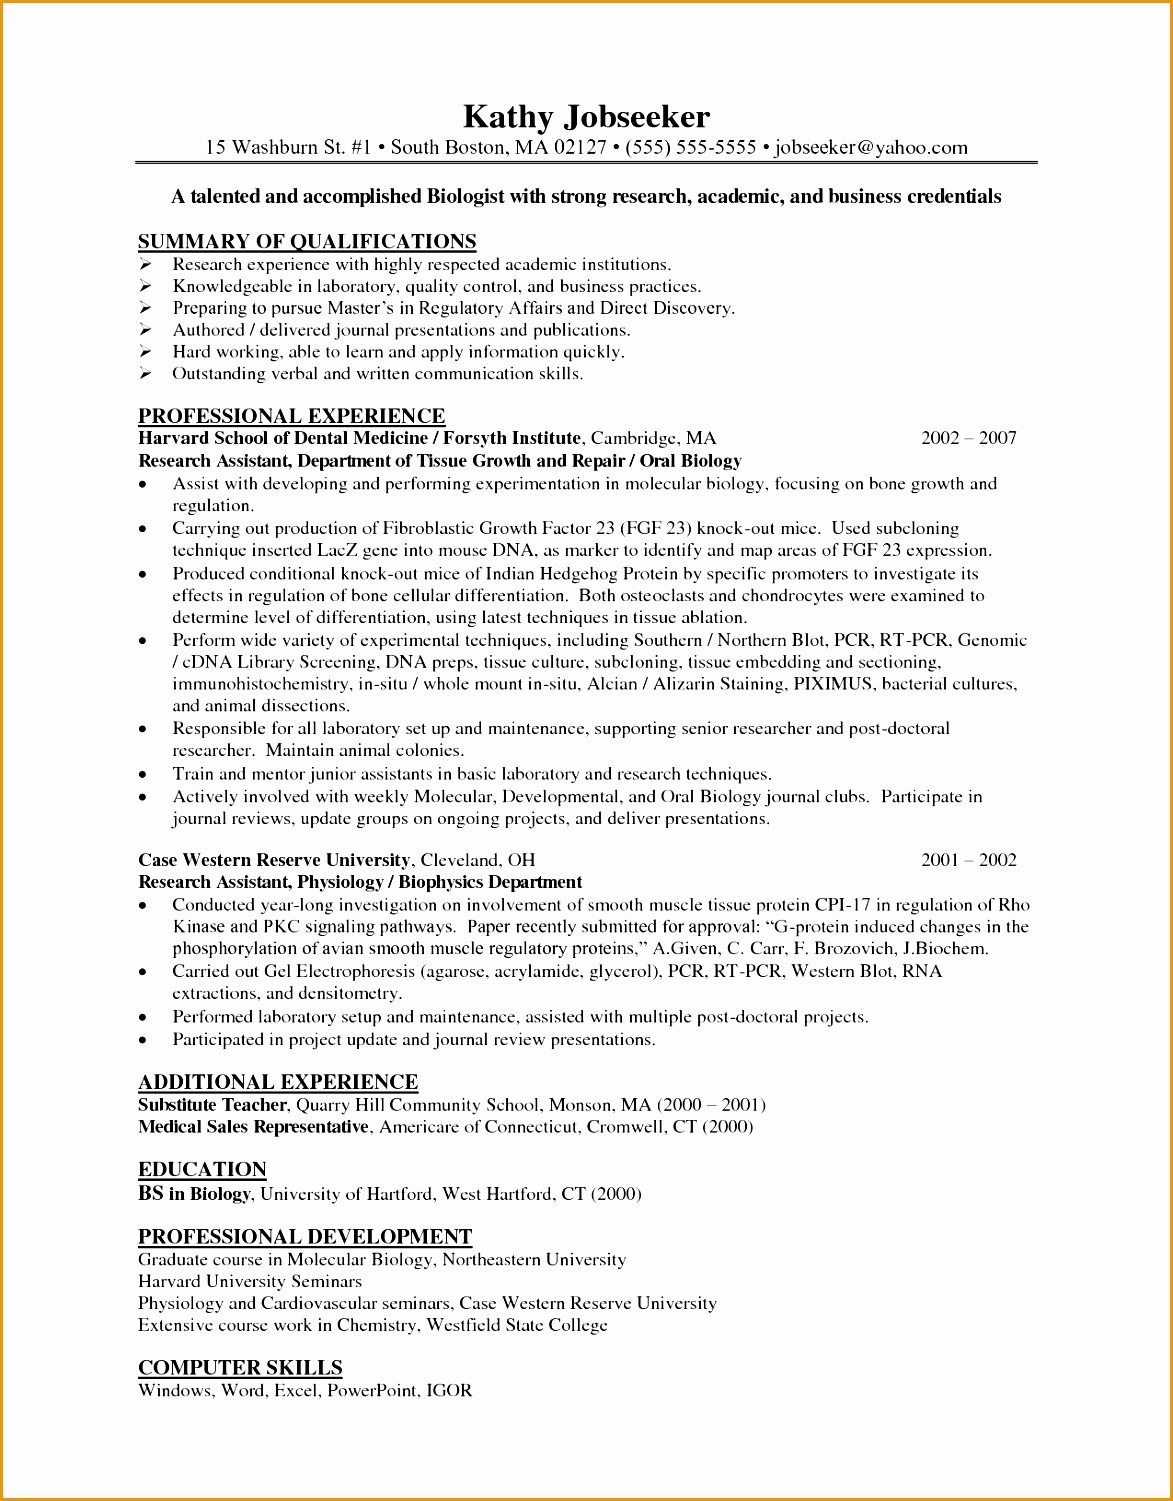 sample resume summary of qualifications15011173